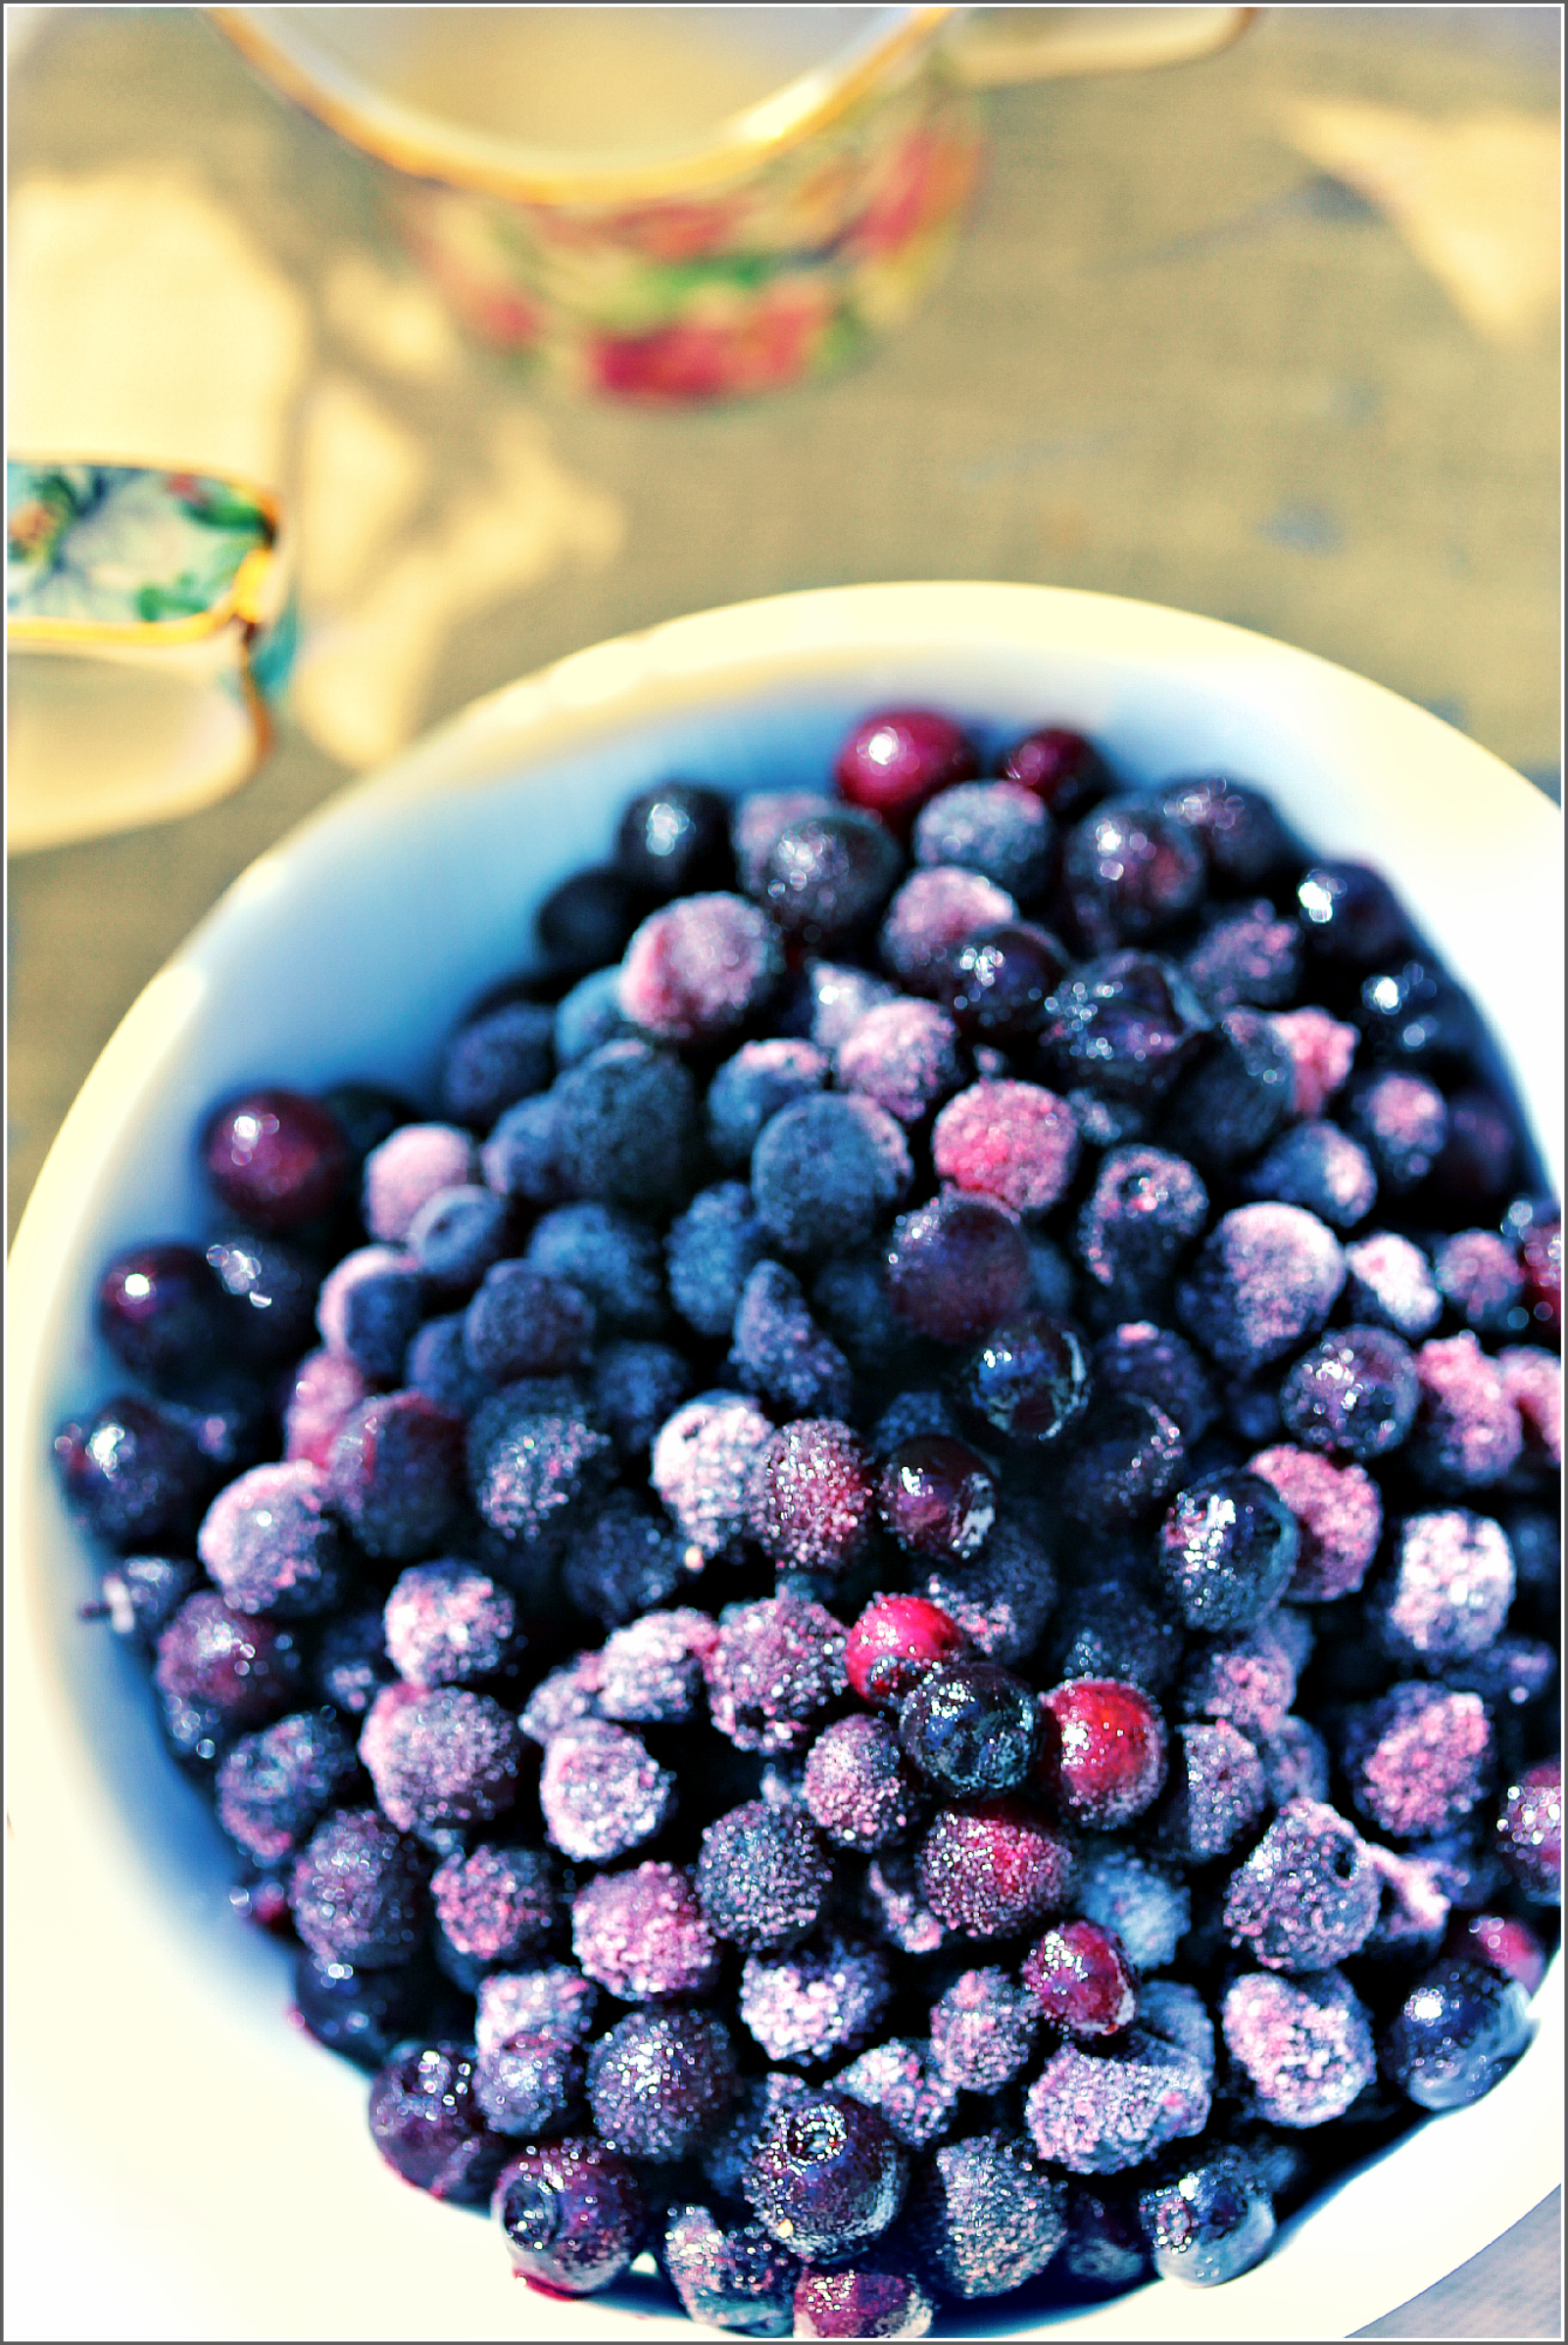 Eat Well, Sunlit Blueberries